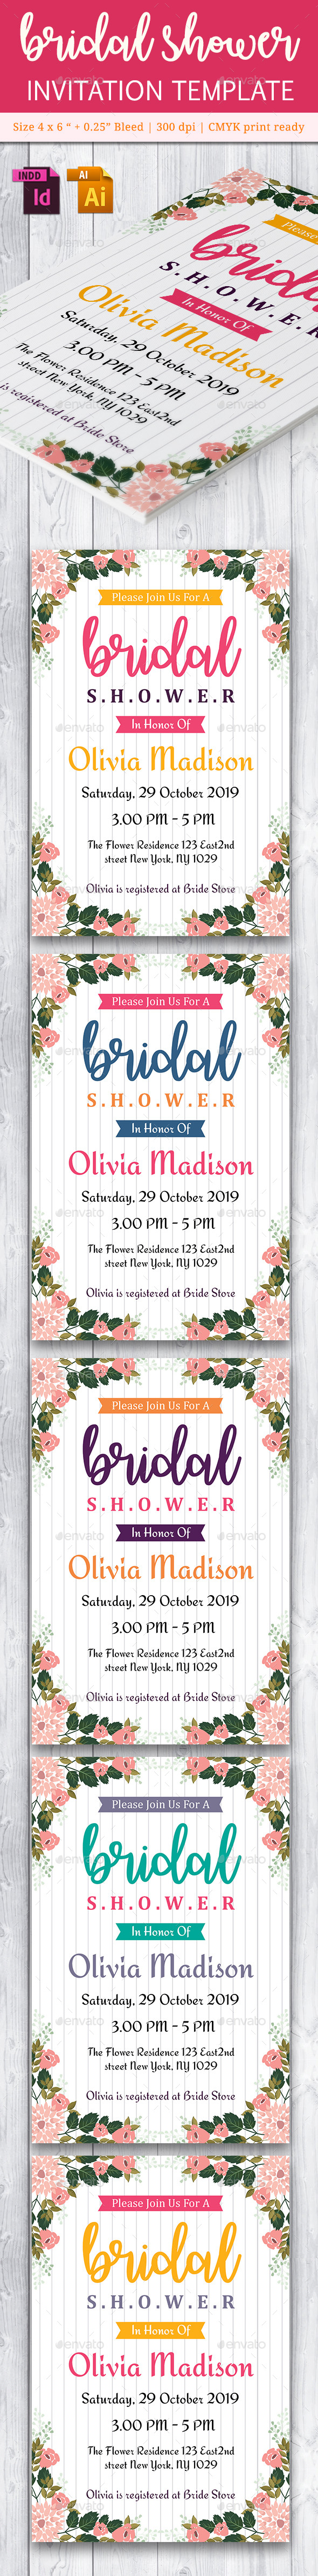 GraphicRiver Bridal Shower Invitation Template Vol 4 20948032